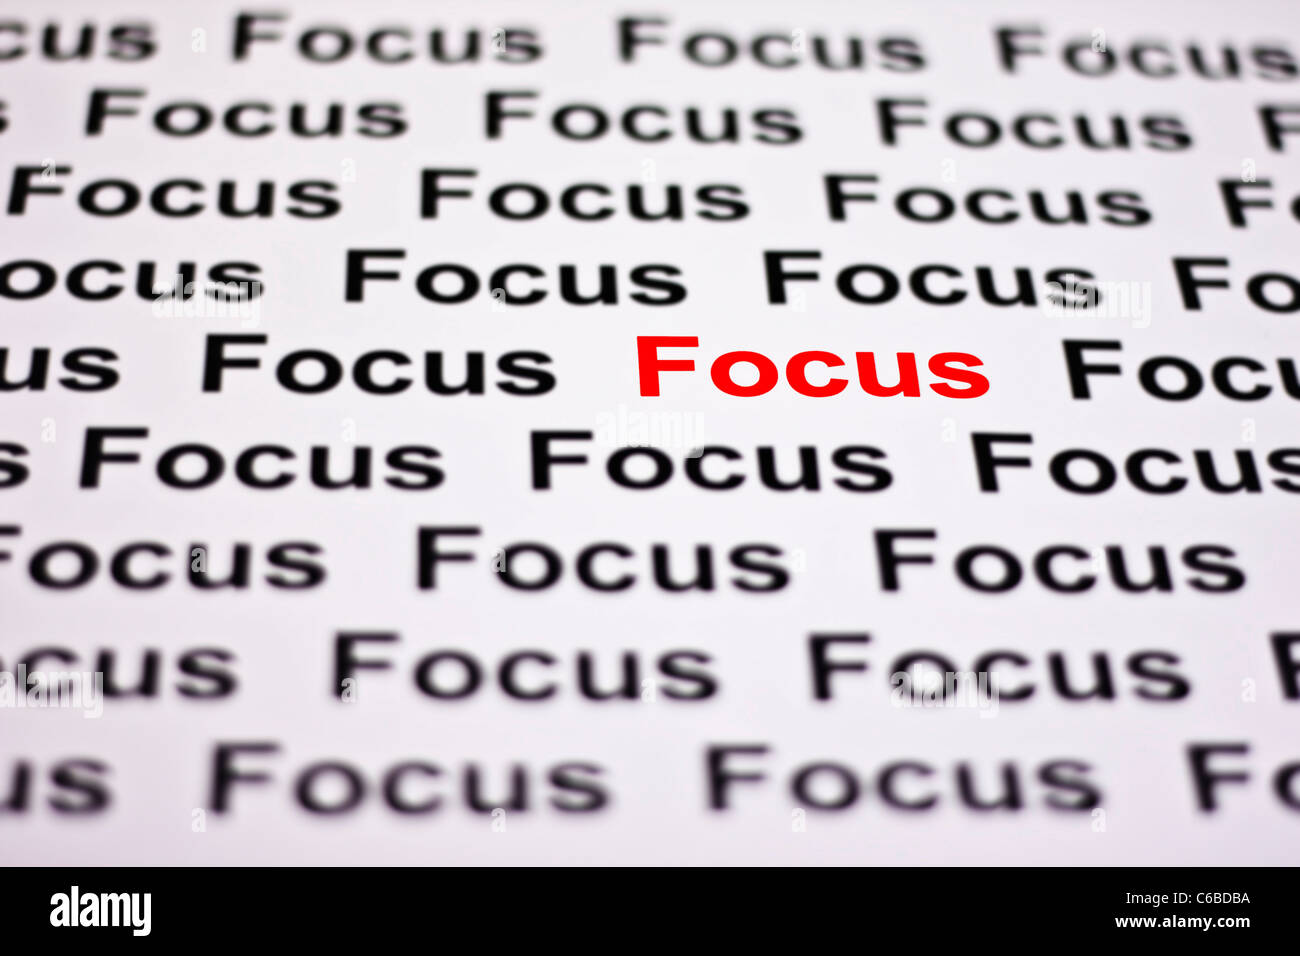 Focused on Focus highlighted in red - Stock Image